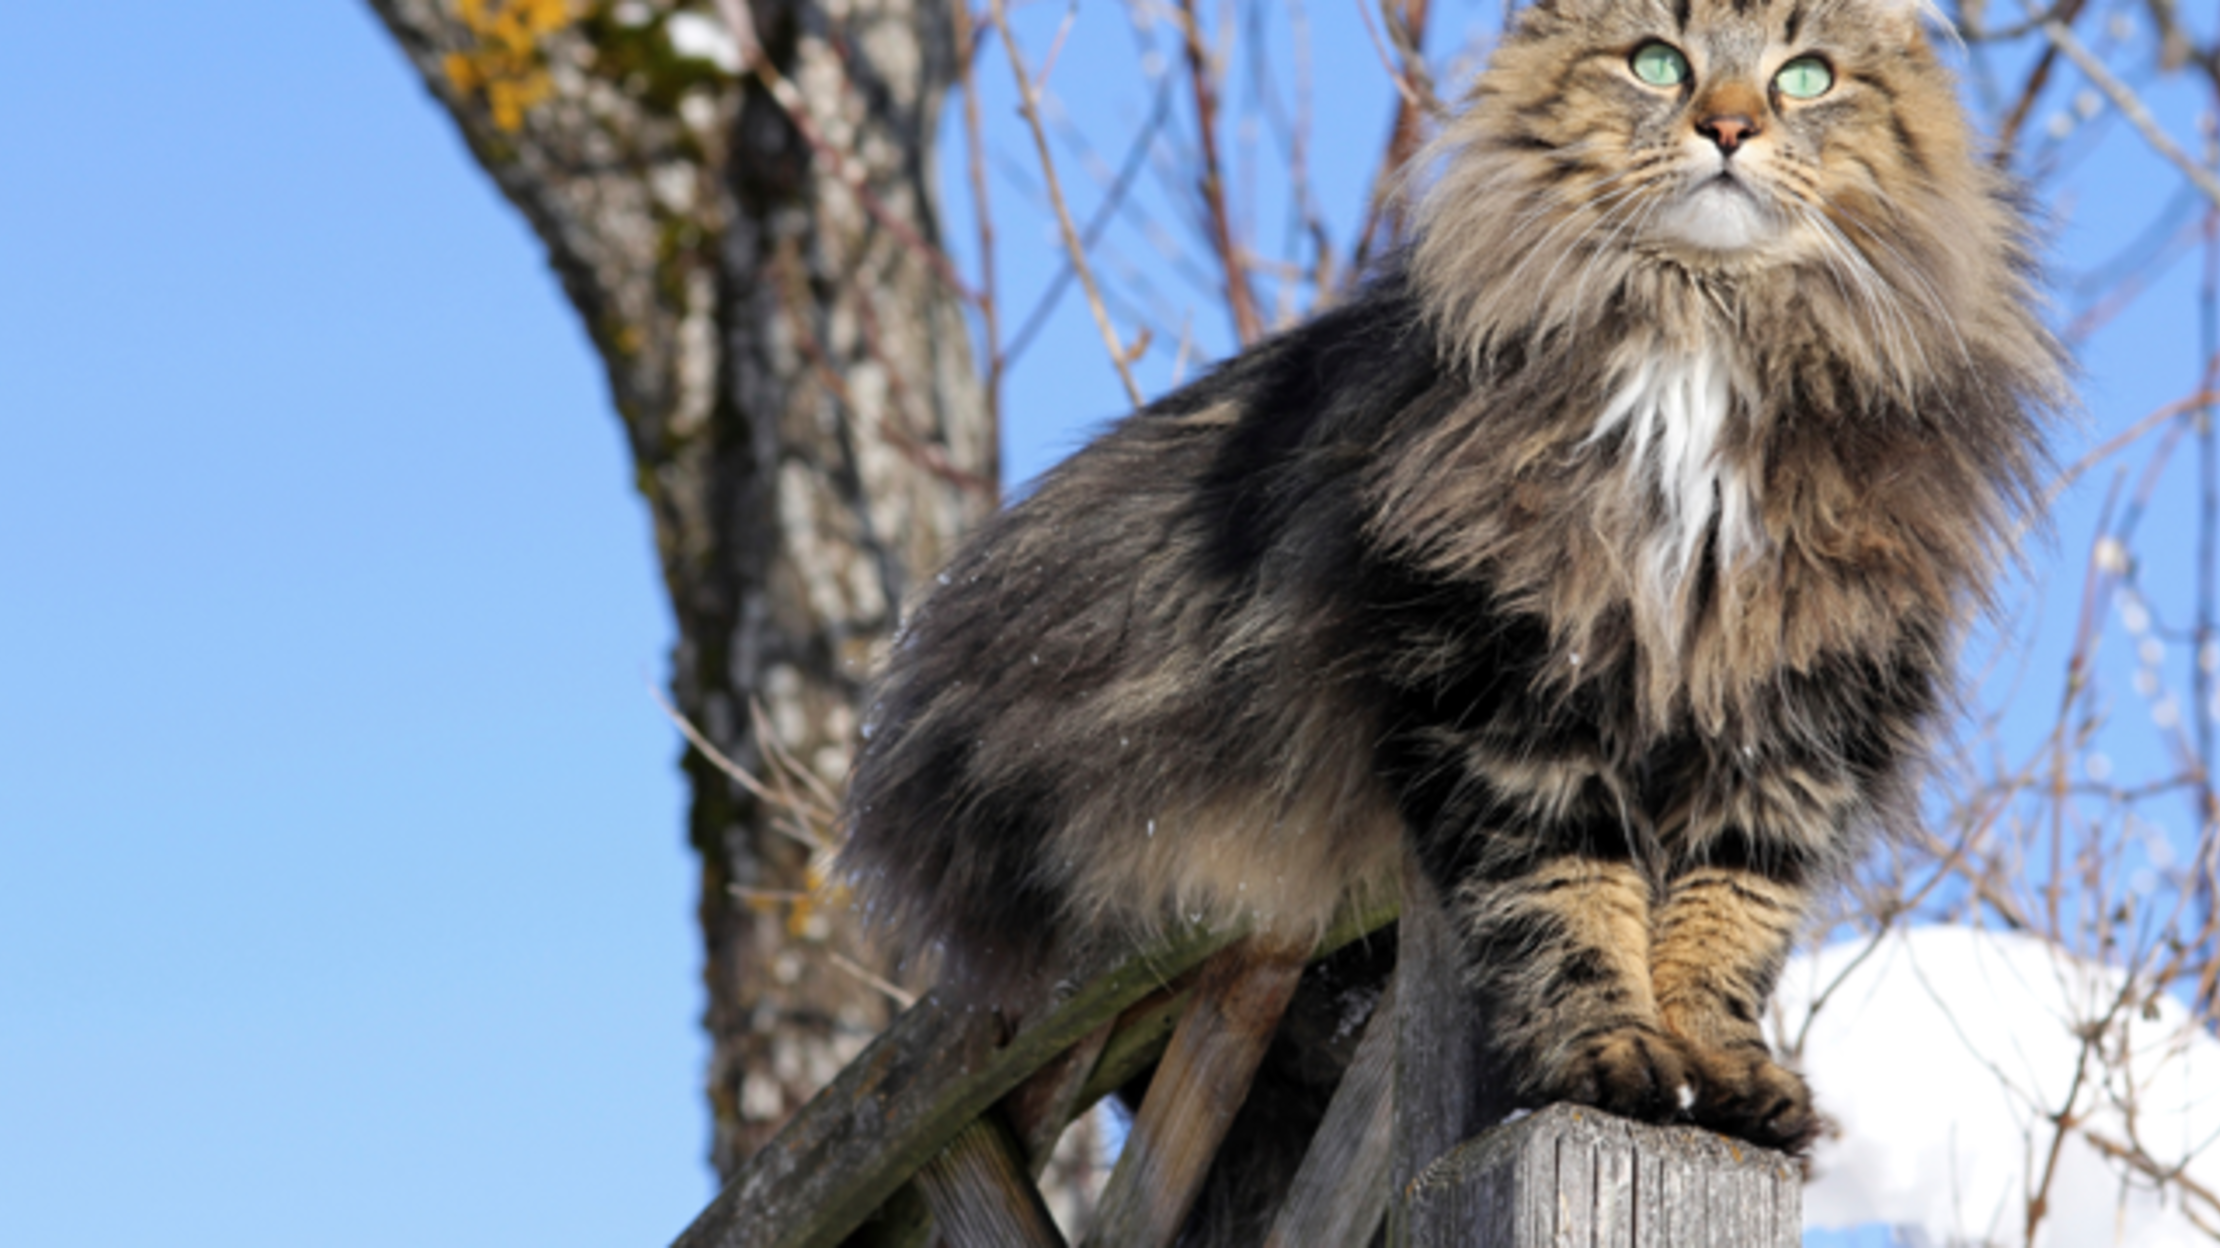 10 Furry Facts About Norwegian Forest Cats | Mental Floss